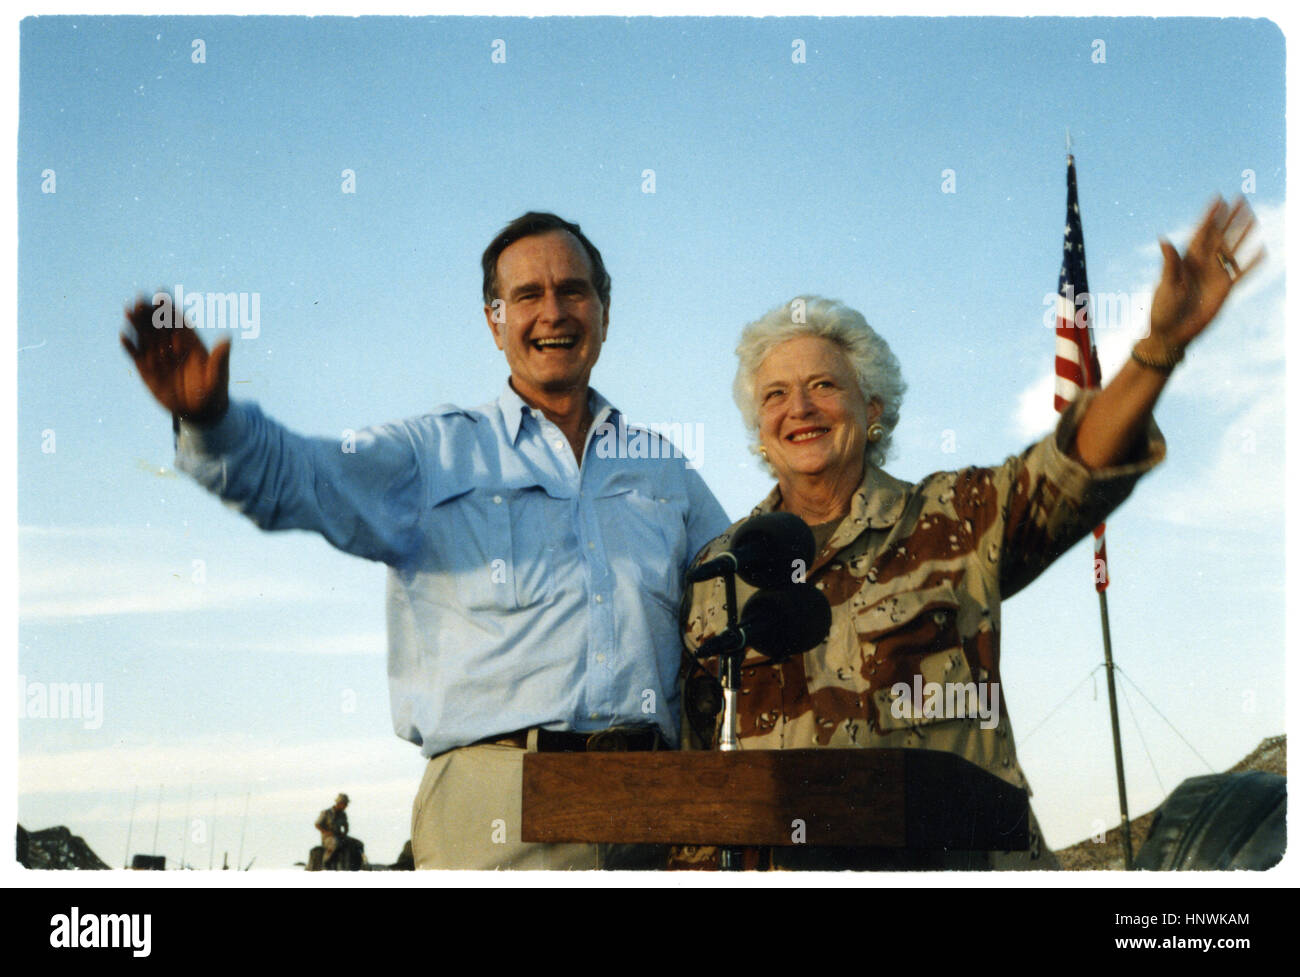 President George Bush and First Lady Barbara Bush wave as they stand in the back of a vehicle during a visit to - Stock Image